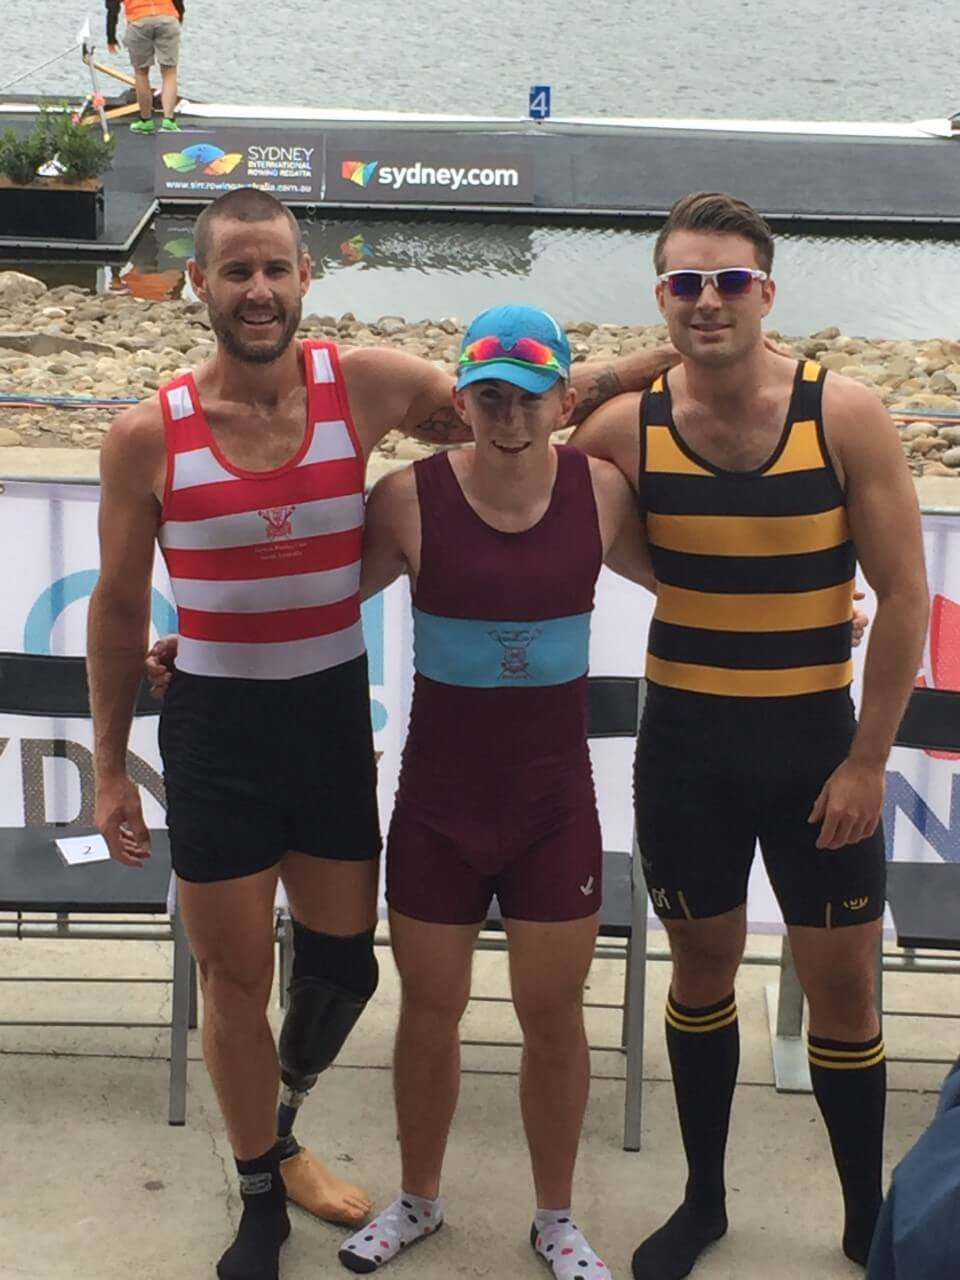 [National Champs Update] Bronze for James Talbot and Strong Row from Eoghan!